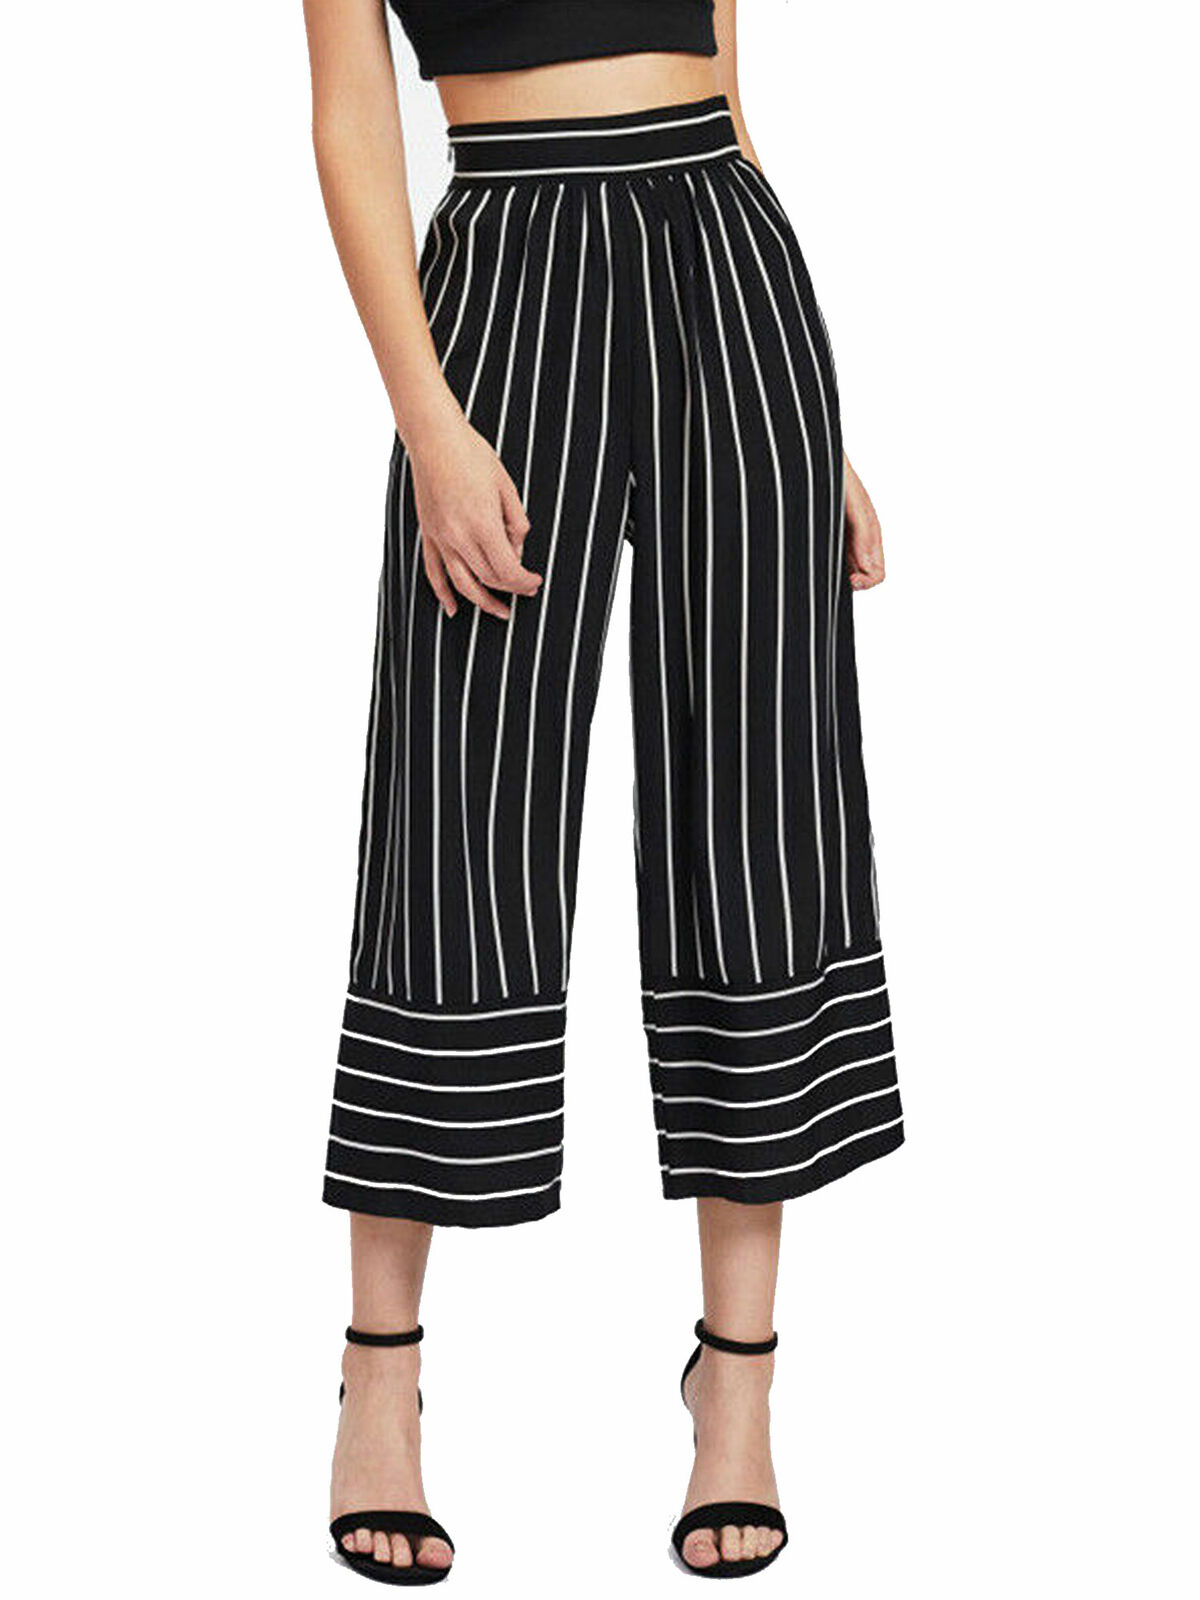 Womens Candy Striped Culotte Pants Wide leg Cropped New Multi Coloured Trousers